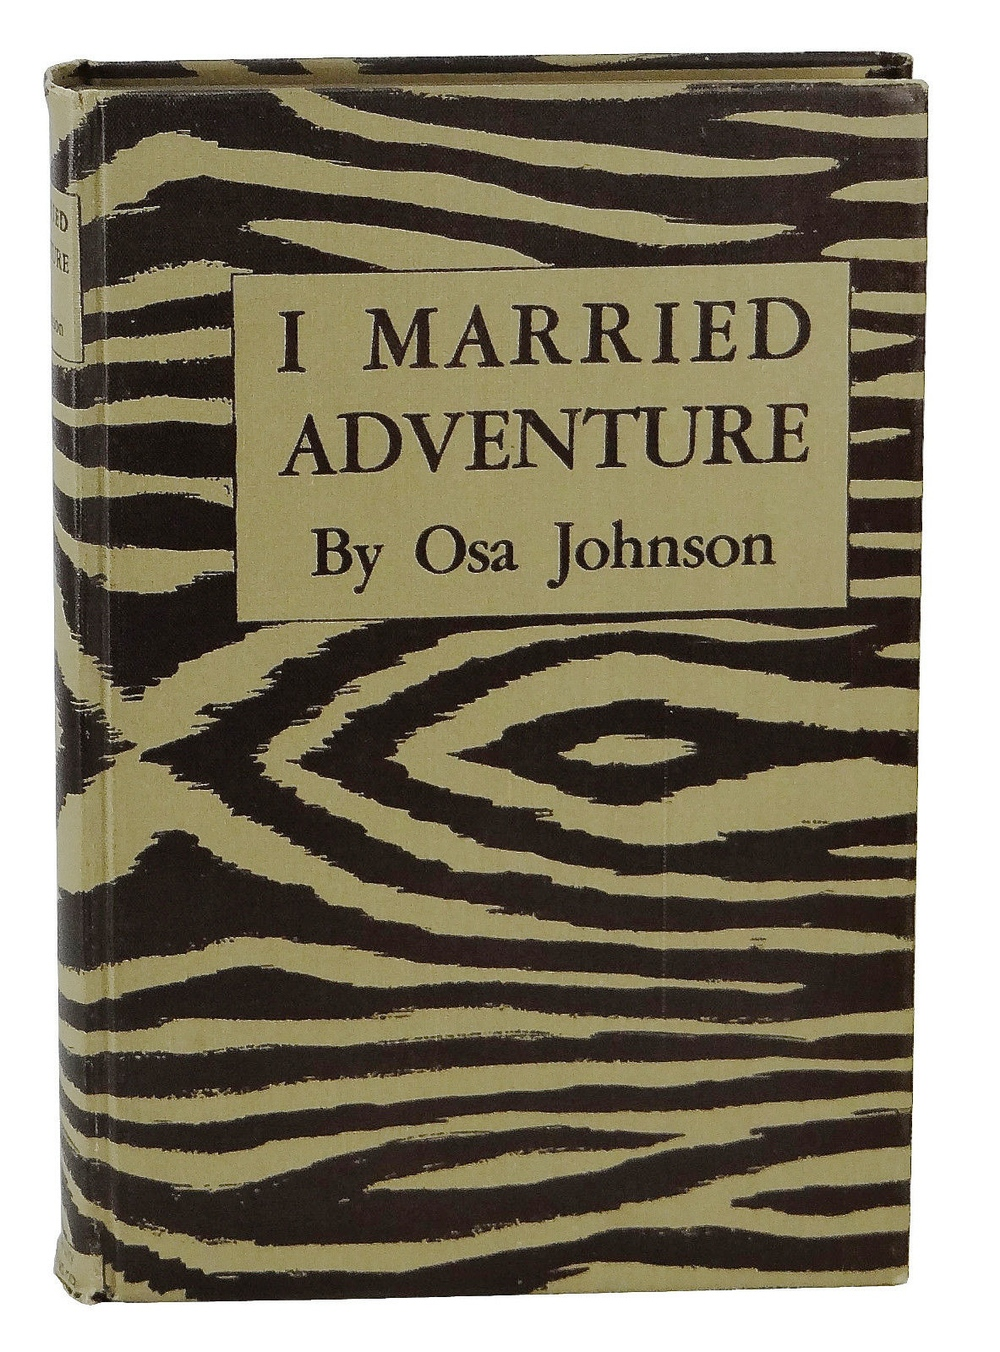 I Married Adventure, by Osa Johnson (Mrs. Martin Johnson). 1940. Mrs. Johnson writes of the years she and her husband spent in Africa and the south seas.